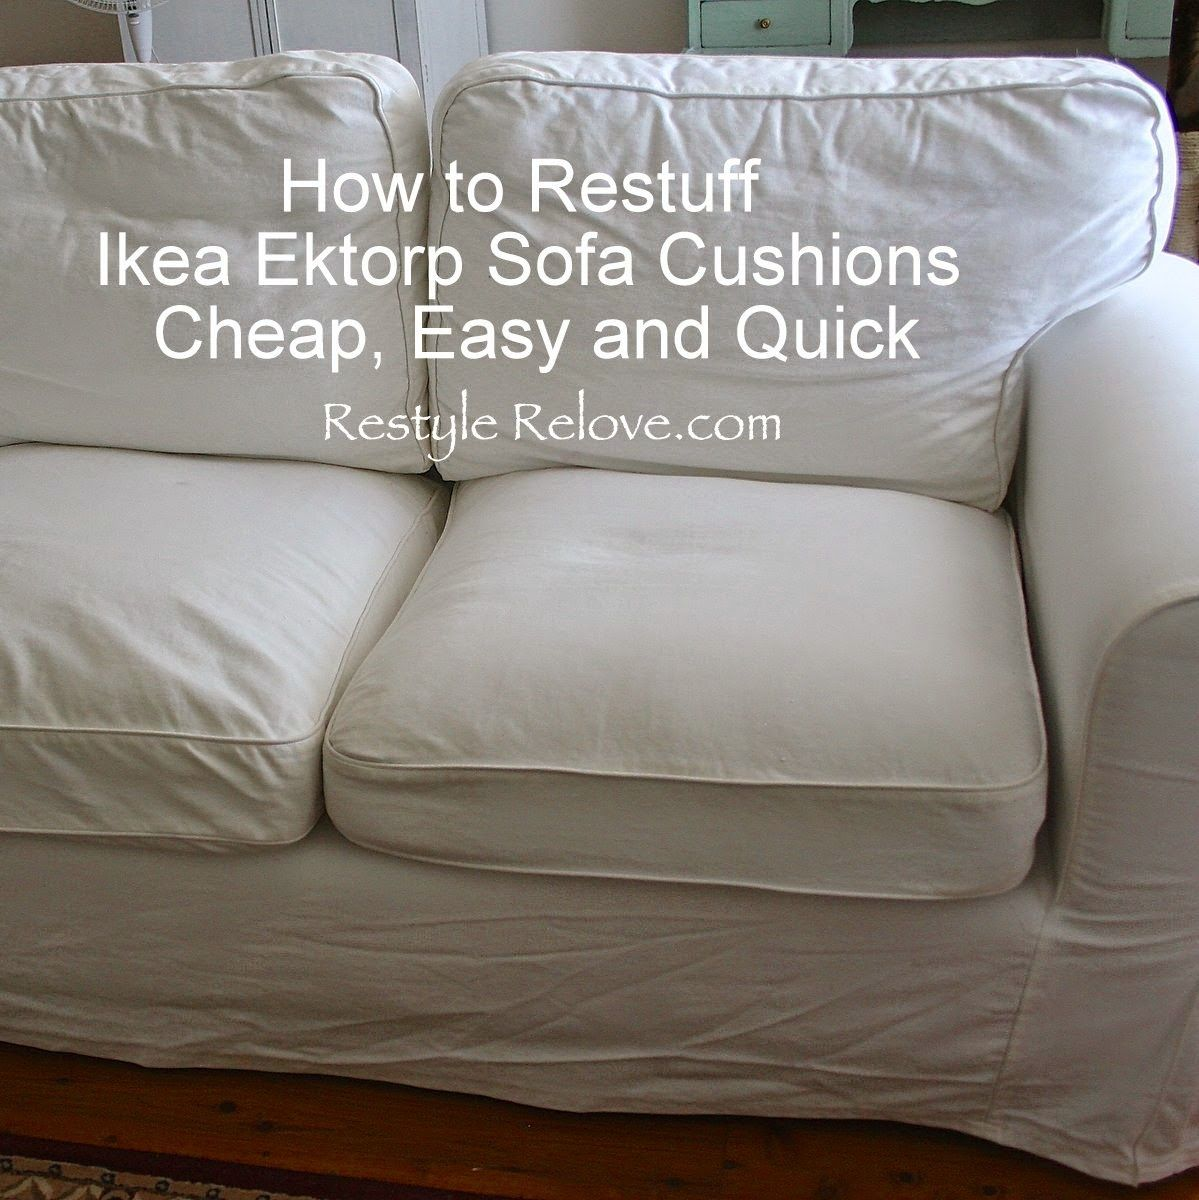 How To Re Plump Leather Sofa Cushions Old World Table Restuffing Endearing